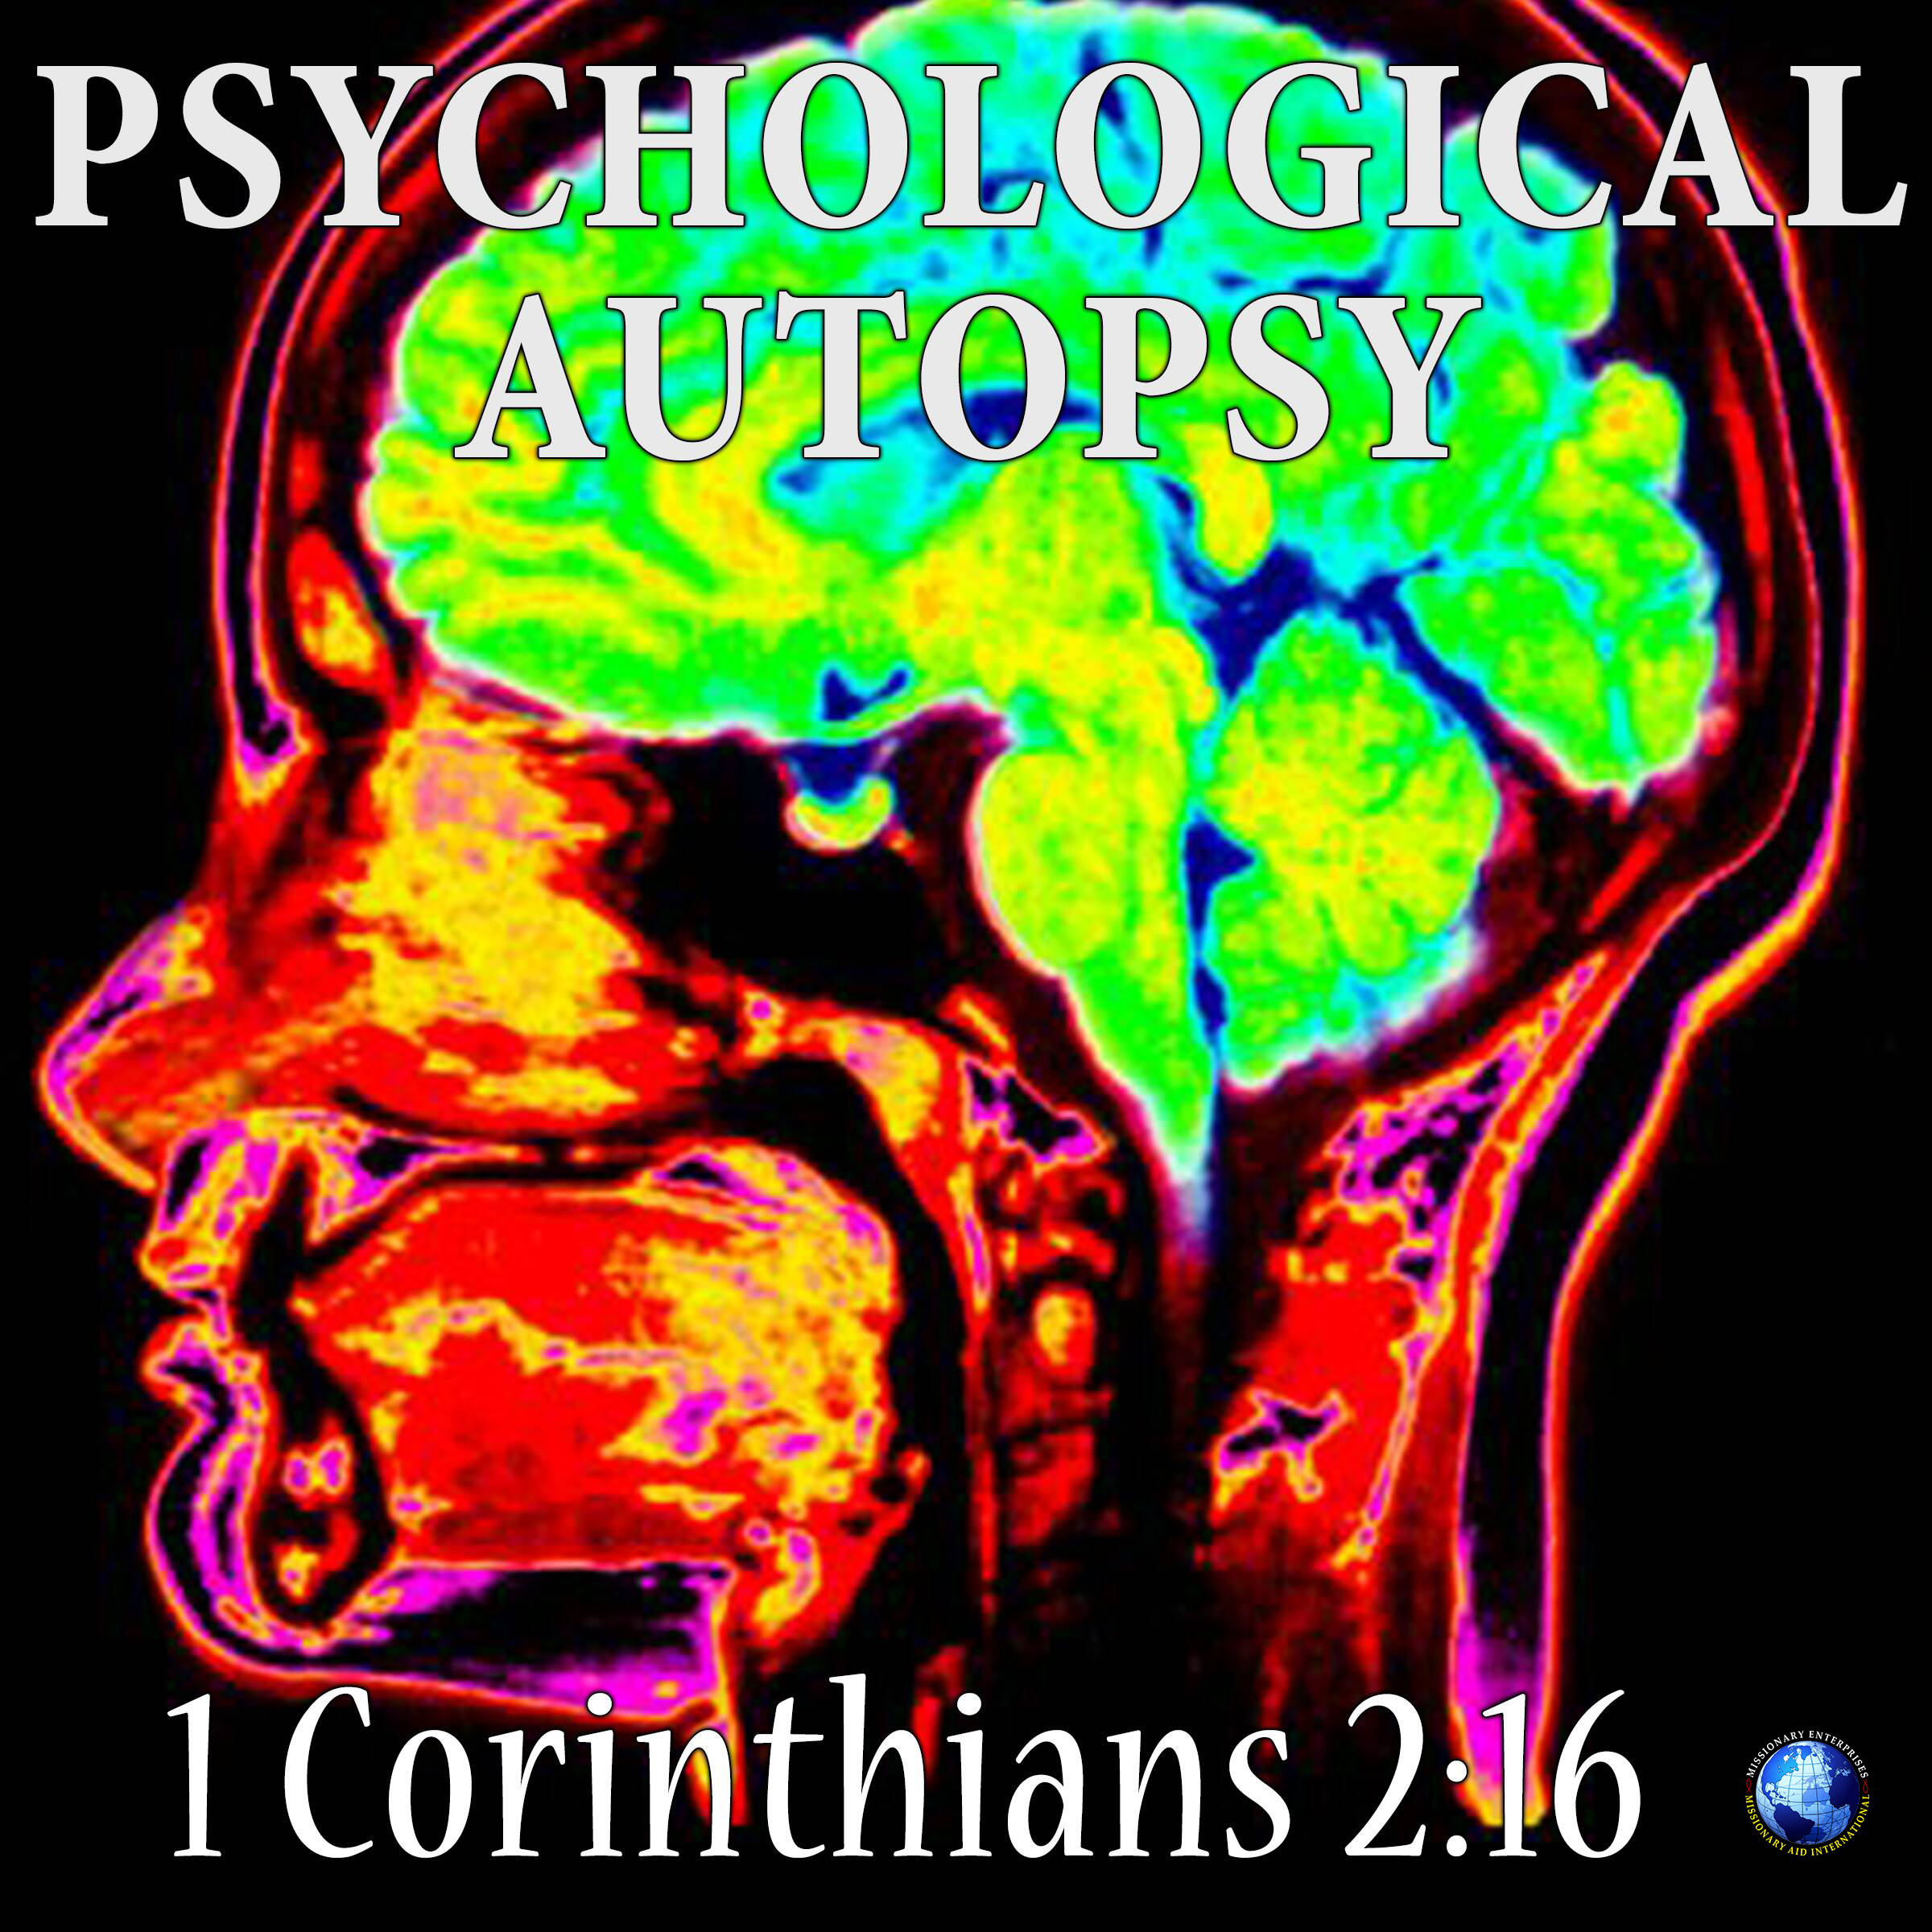 Psychological Autopsy